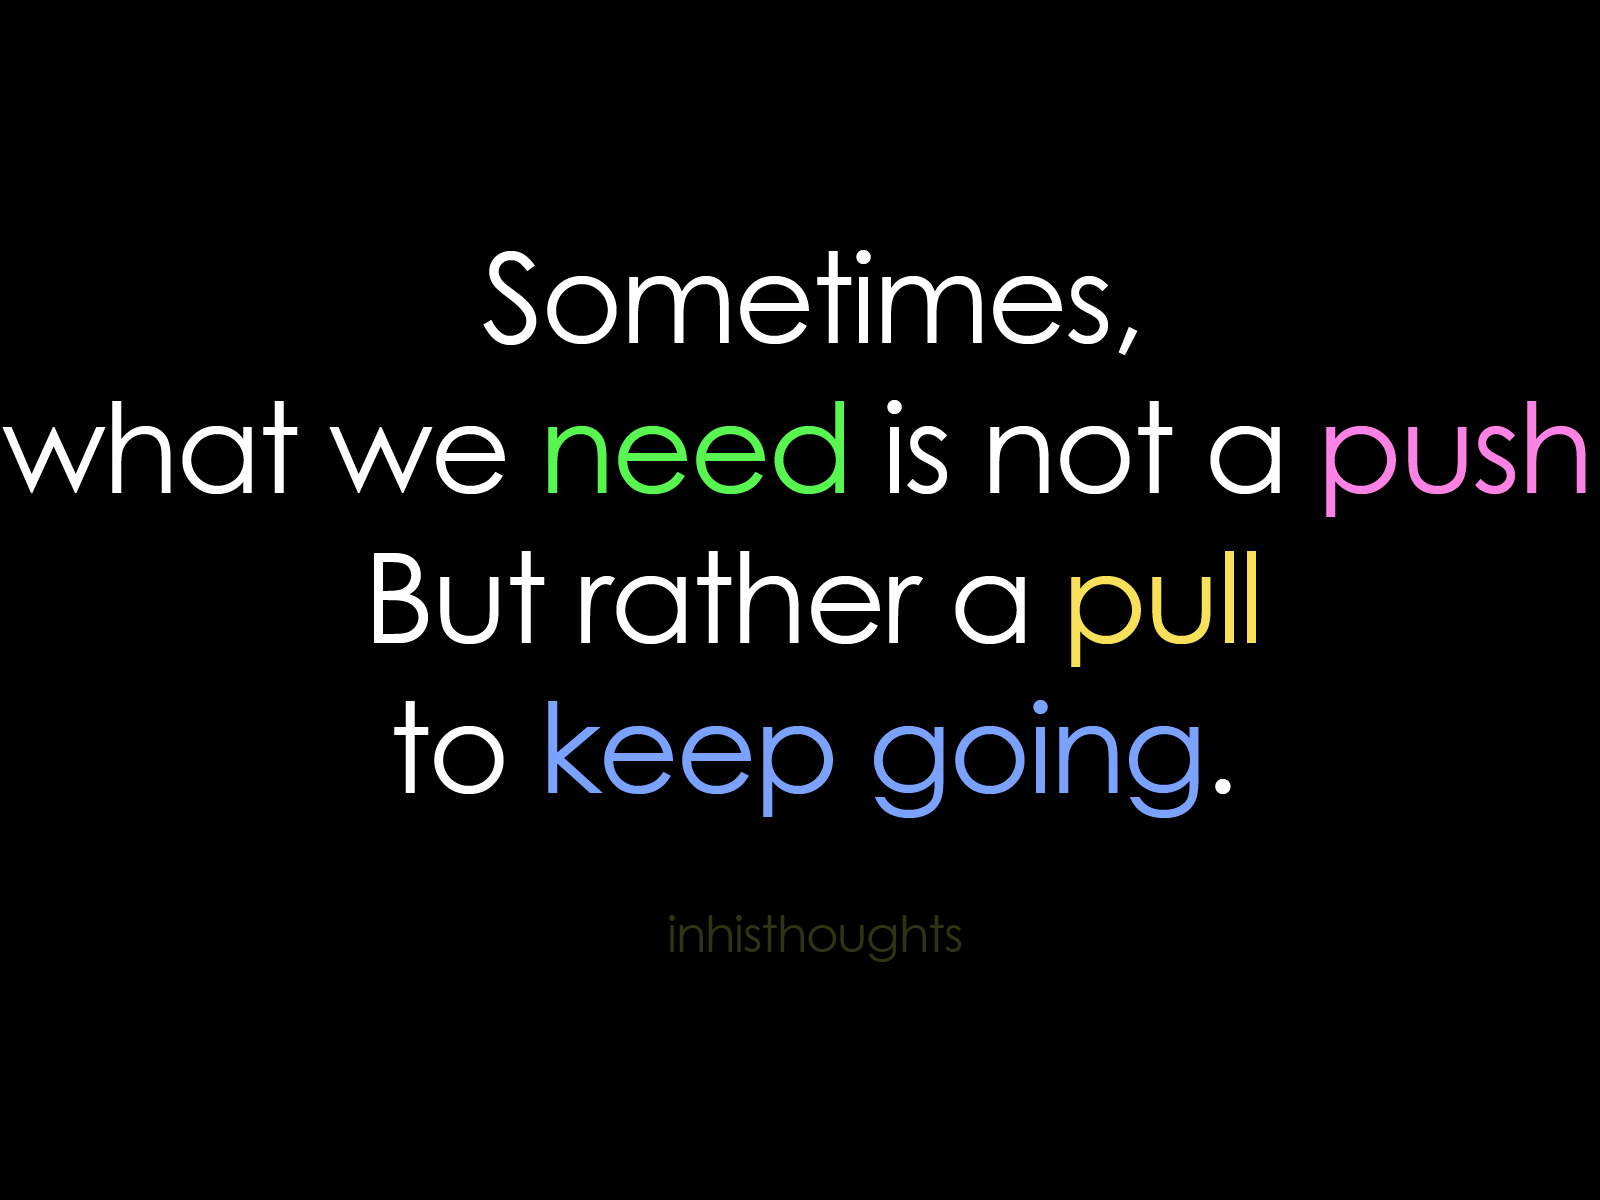 ... We Need Is Not a Push But Rather a Pull to Keep Going ~ Life Quote